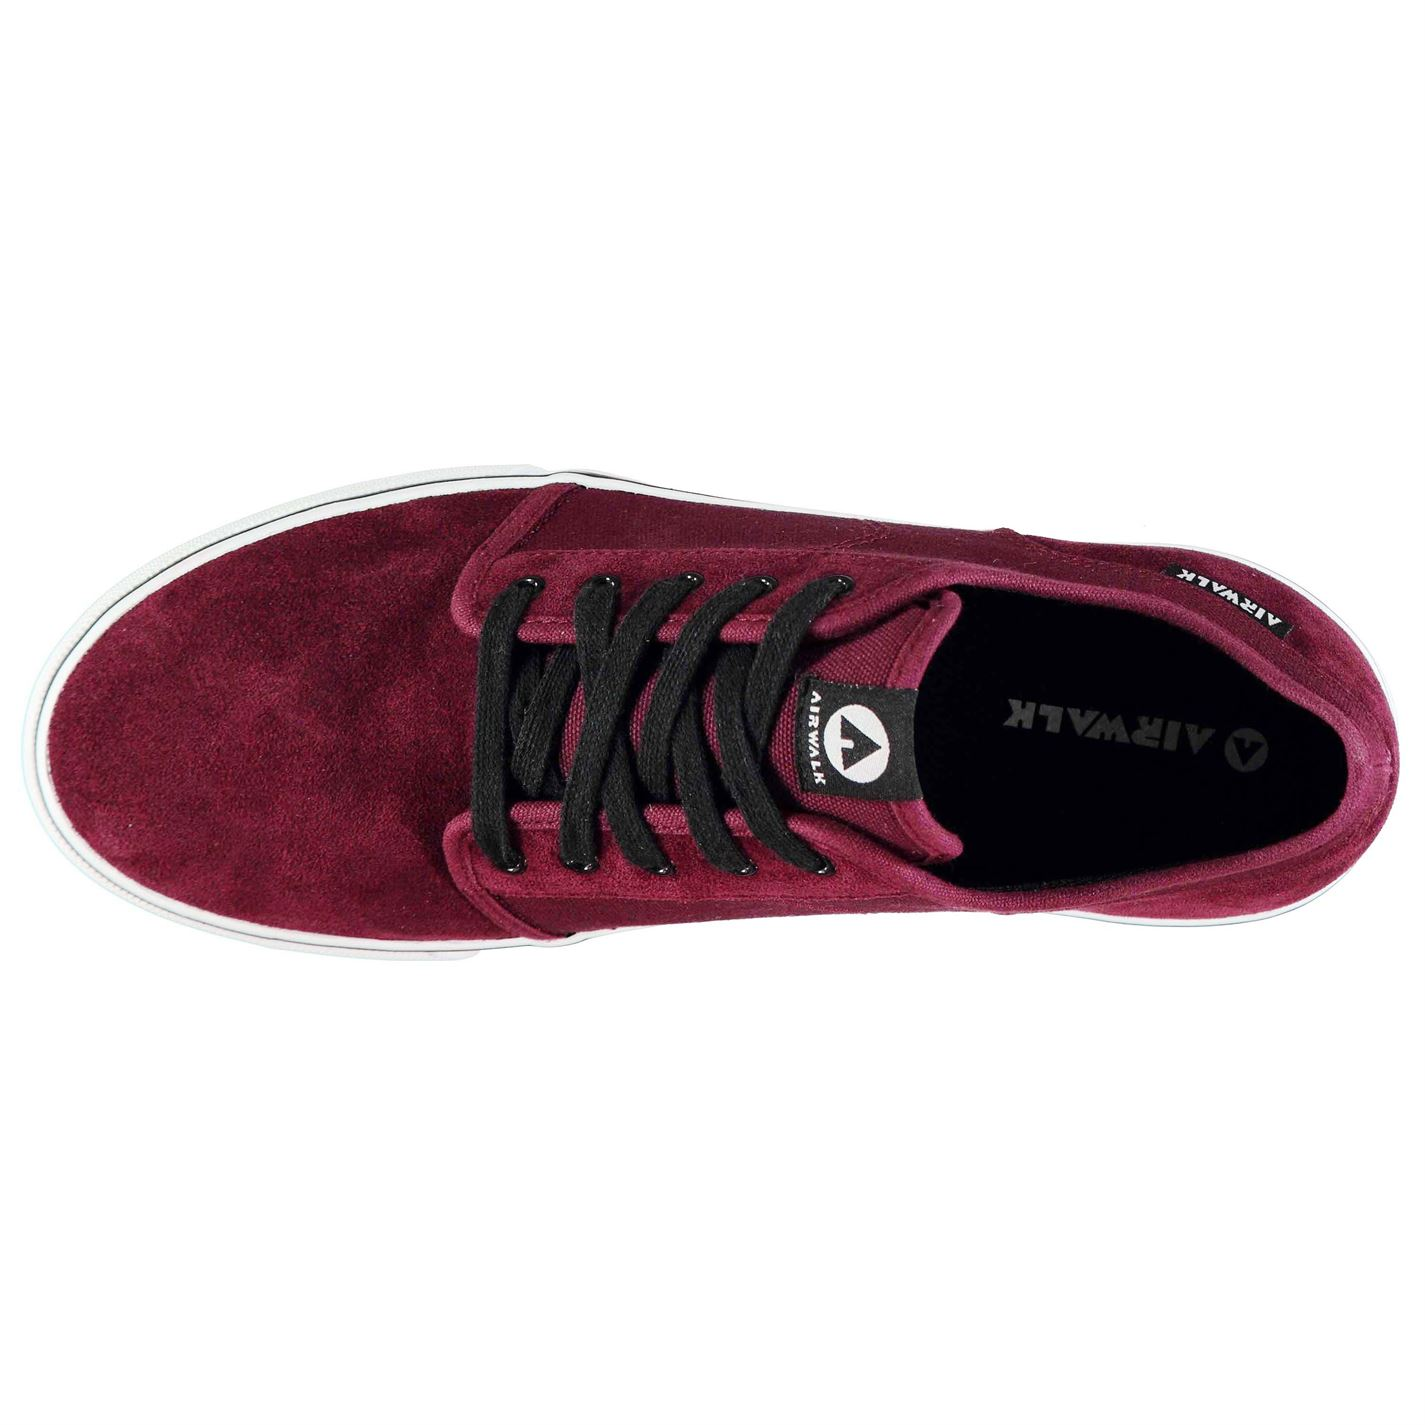 Airwalk Tempo 2 Skate Shoes Mens Gents Laces Fastened Suede